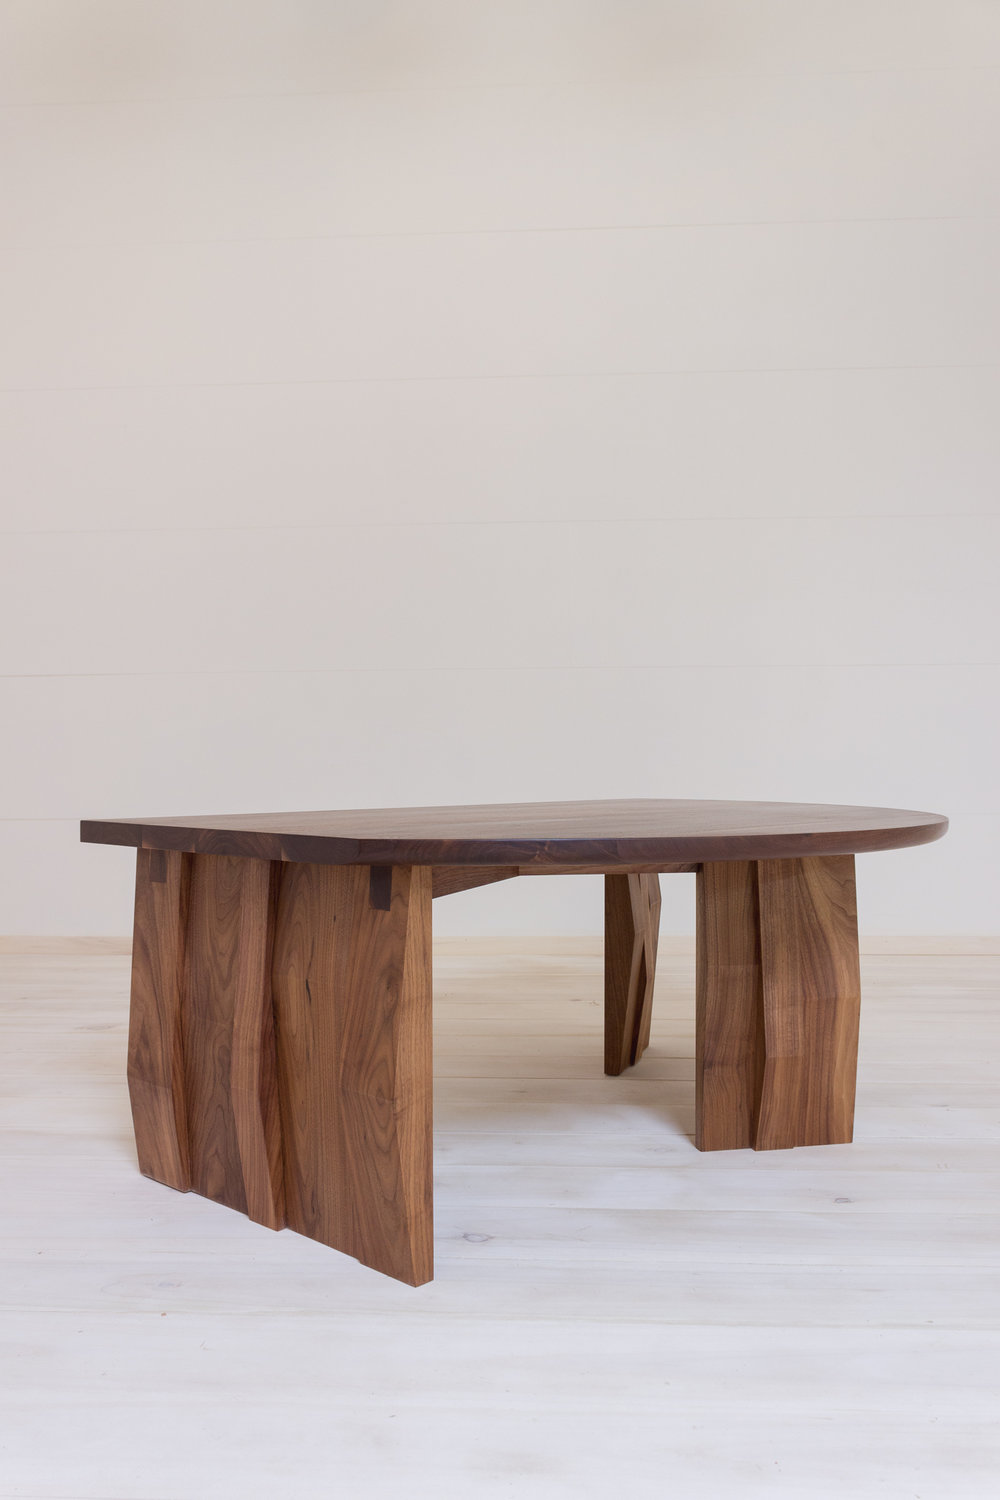 CoffeeTable_008.JPG